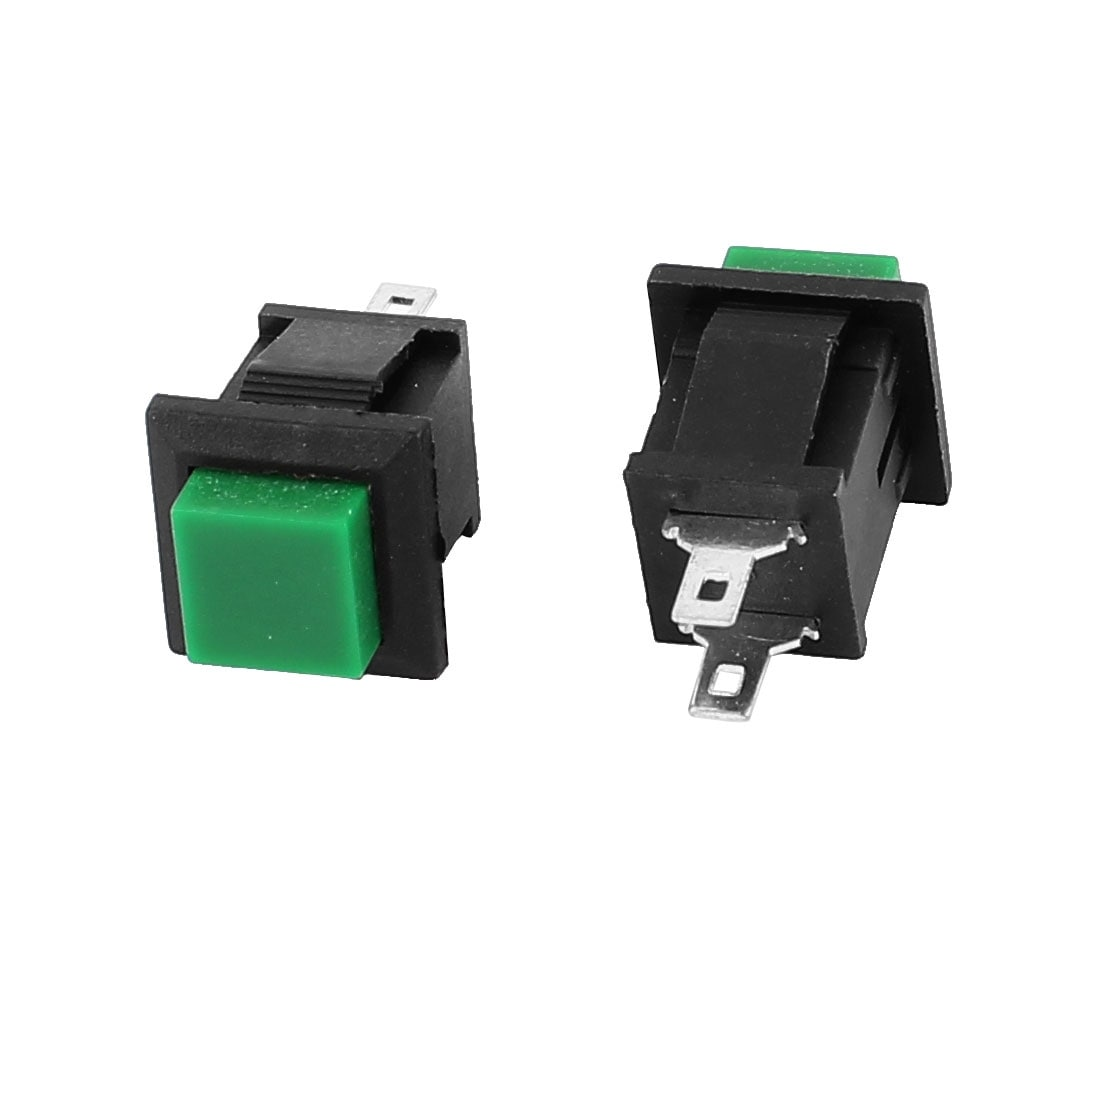 Shop 10pcs Ac 250v 1a 2 Terminals Nc Spst Momentary Square Push Of Switches Should Only Require Two Button Switch Green Free Shipping On Orders Over 45 18254848